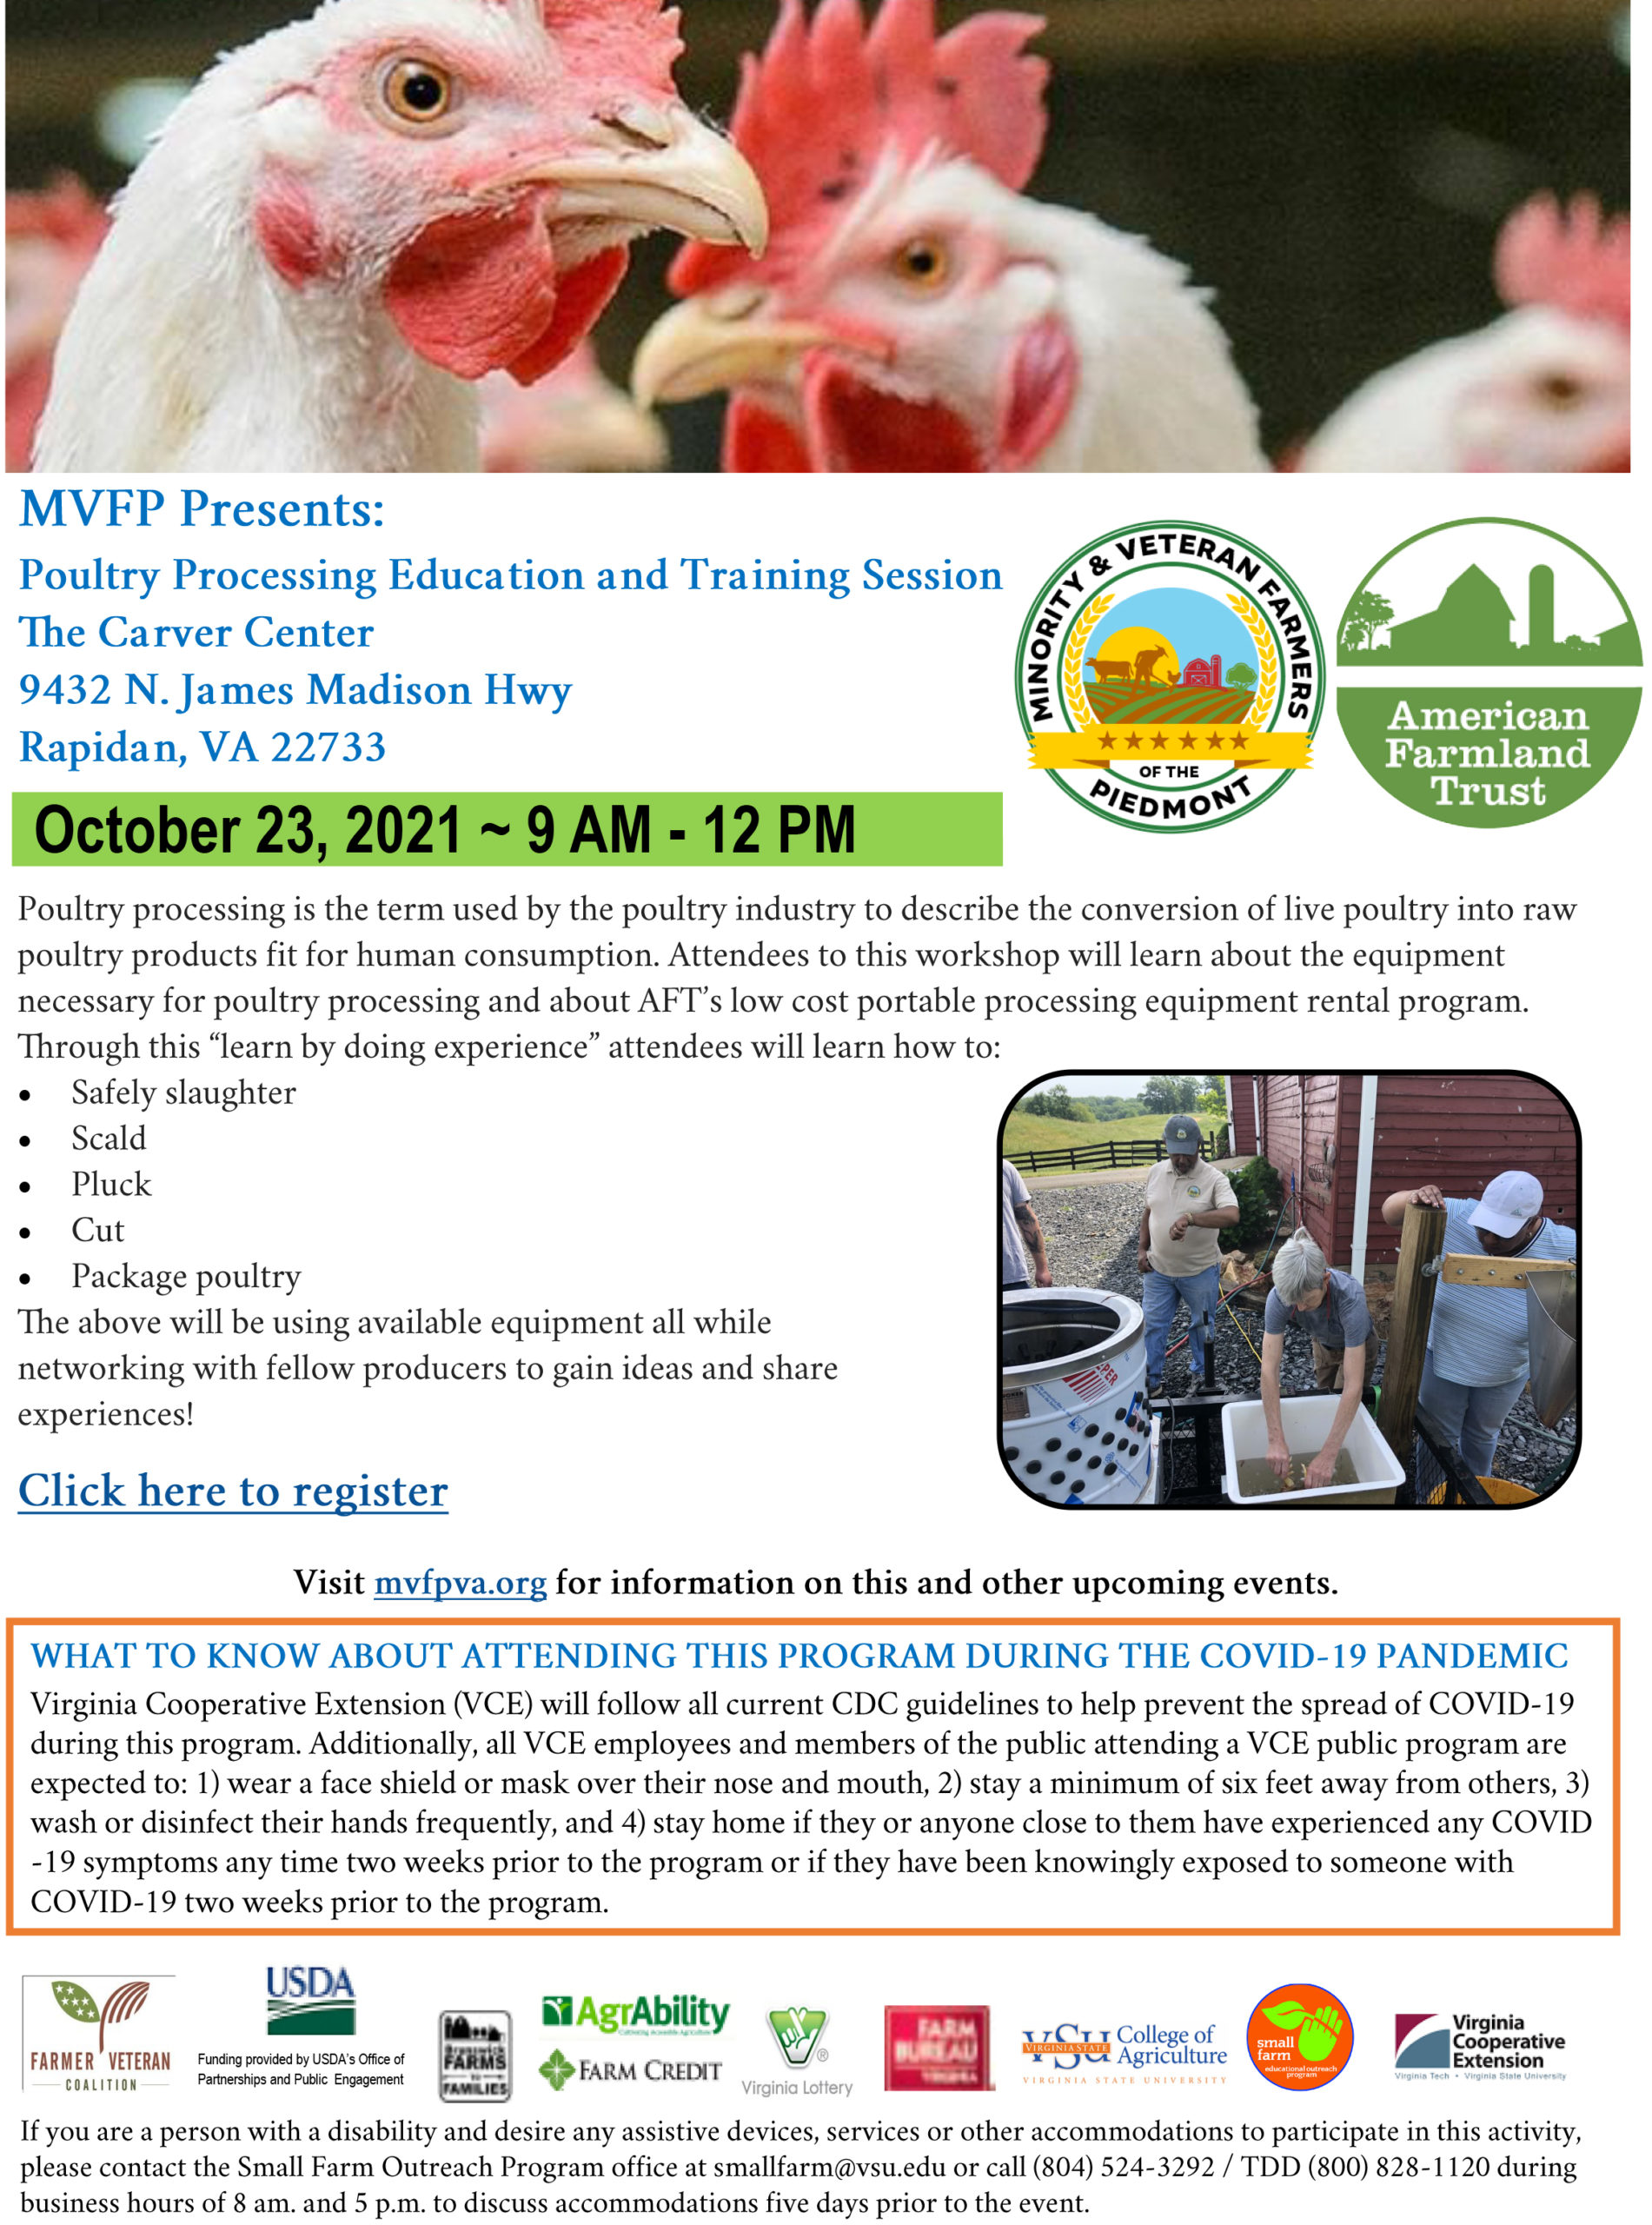 Poultry Processing Education and Training Session flyer with images of roosters